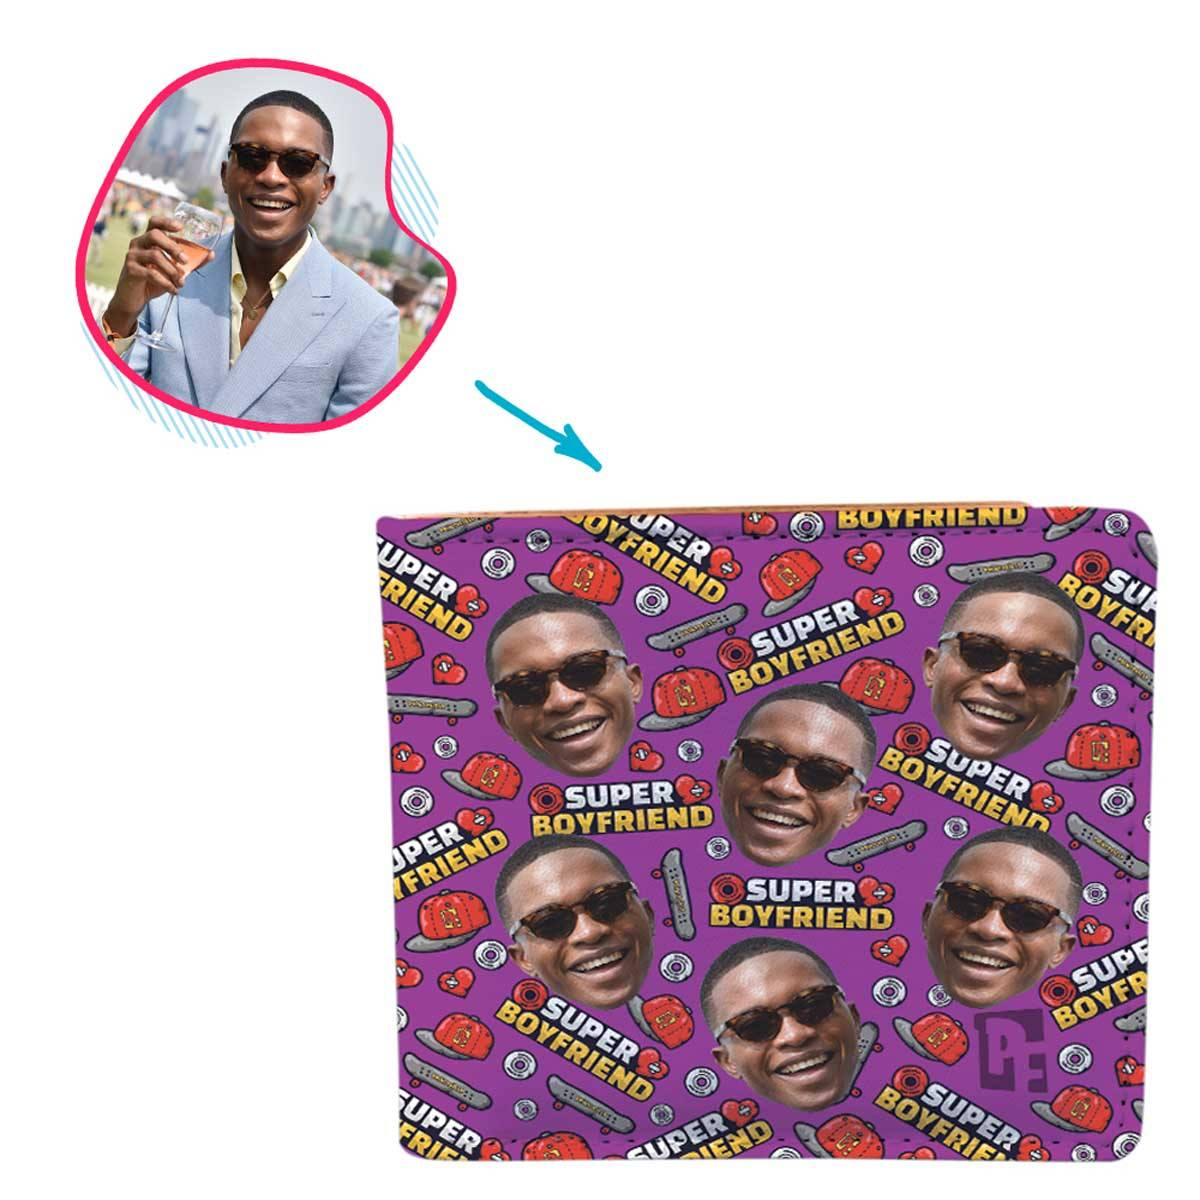 Purple Boyfriend personalized wallet with photo of face printed on it